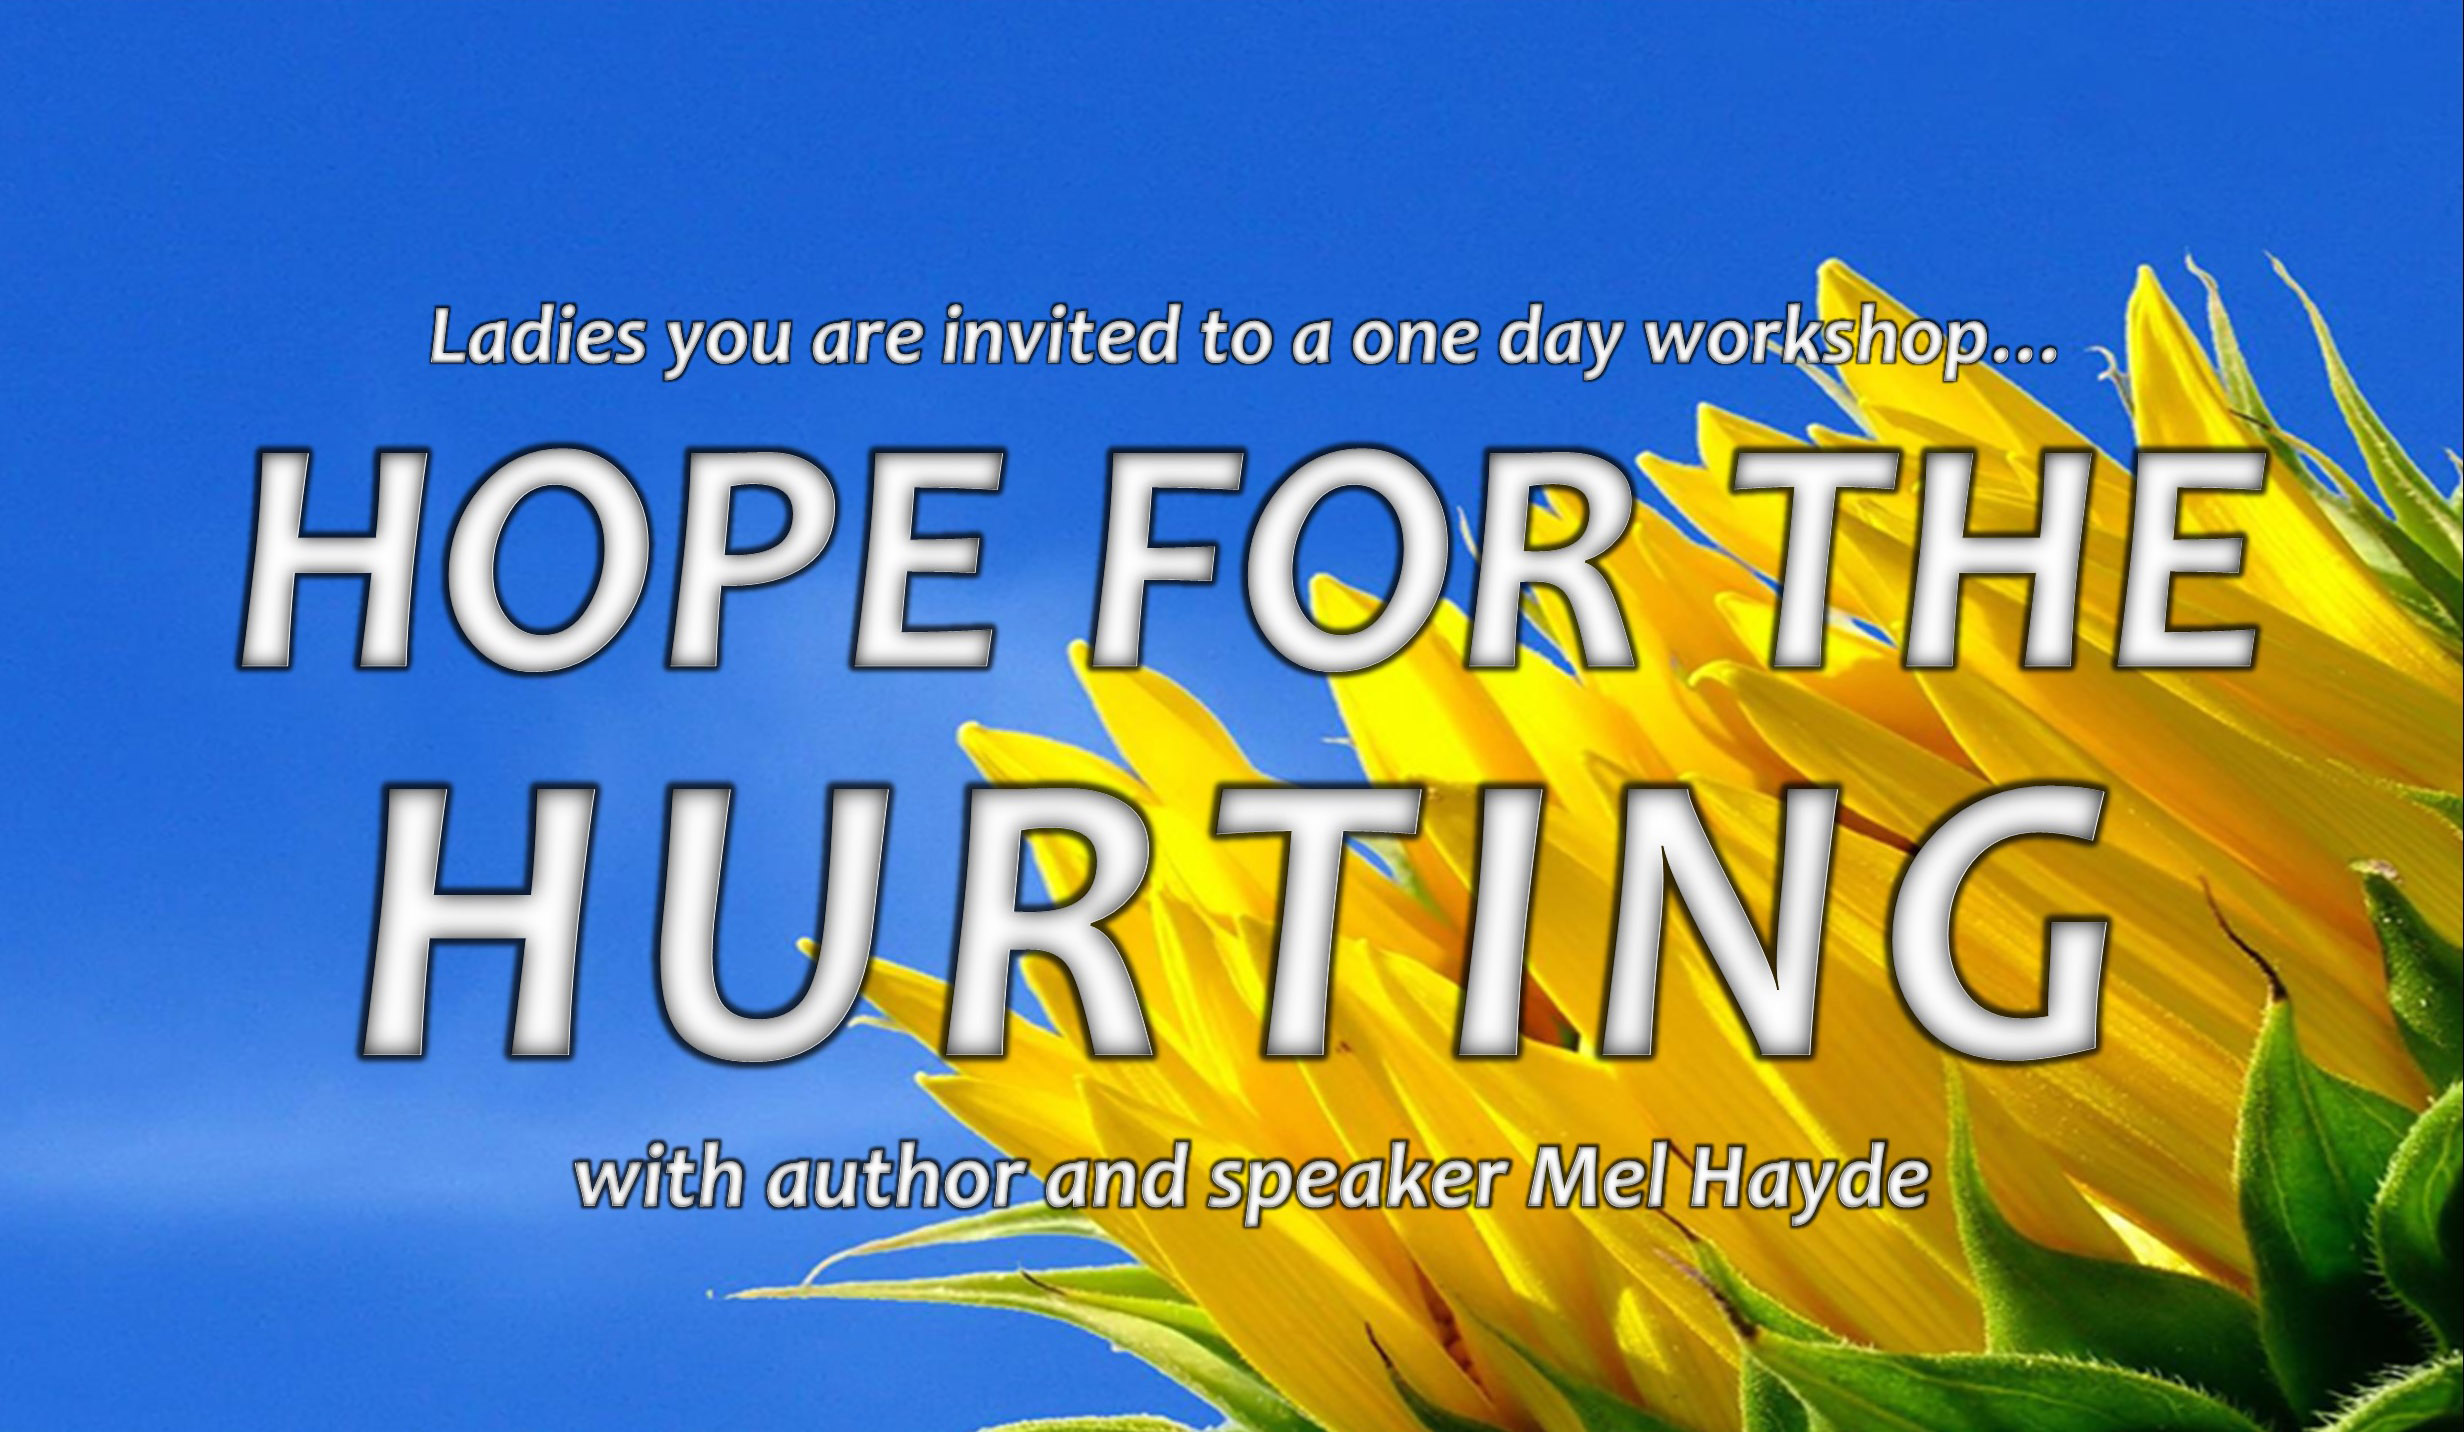 Hope for the Hurting Ladies Event